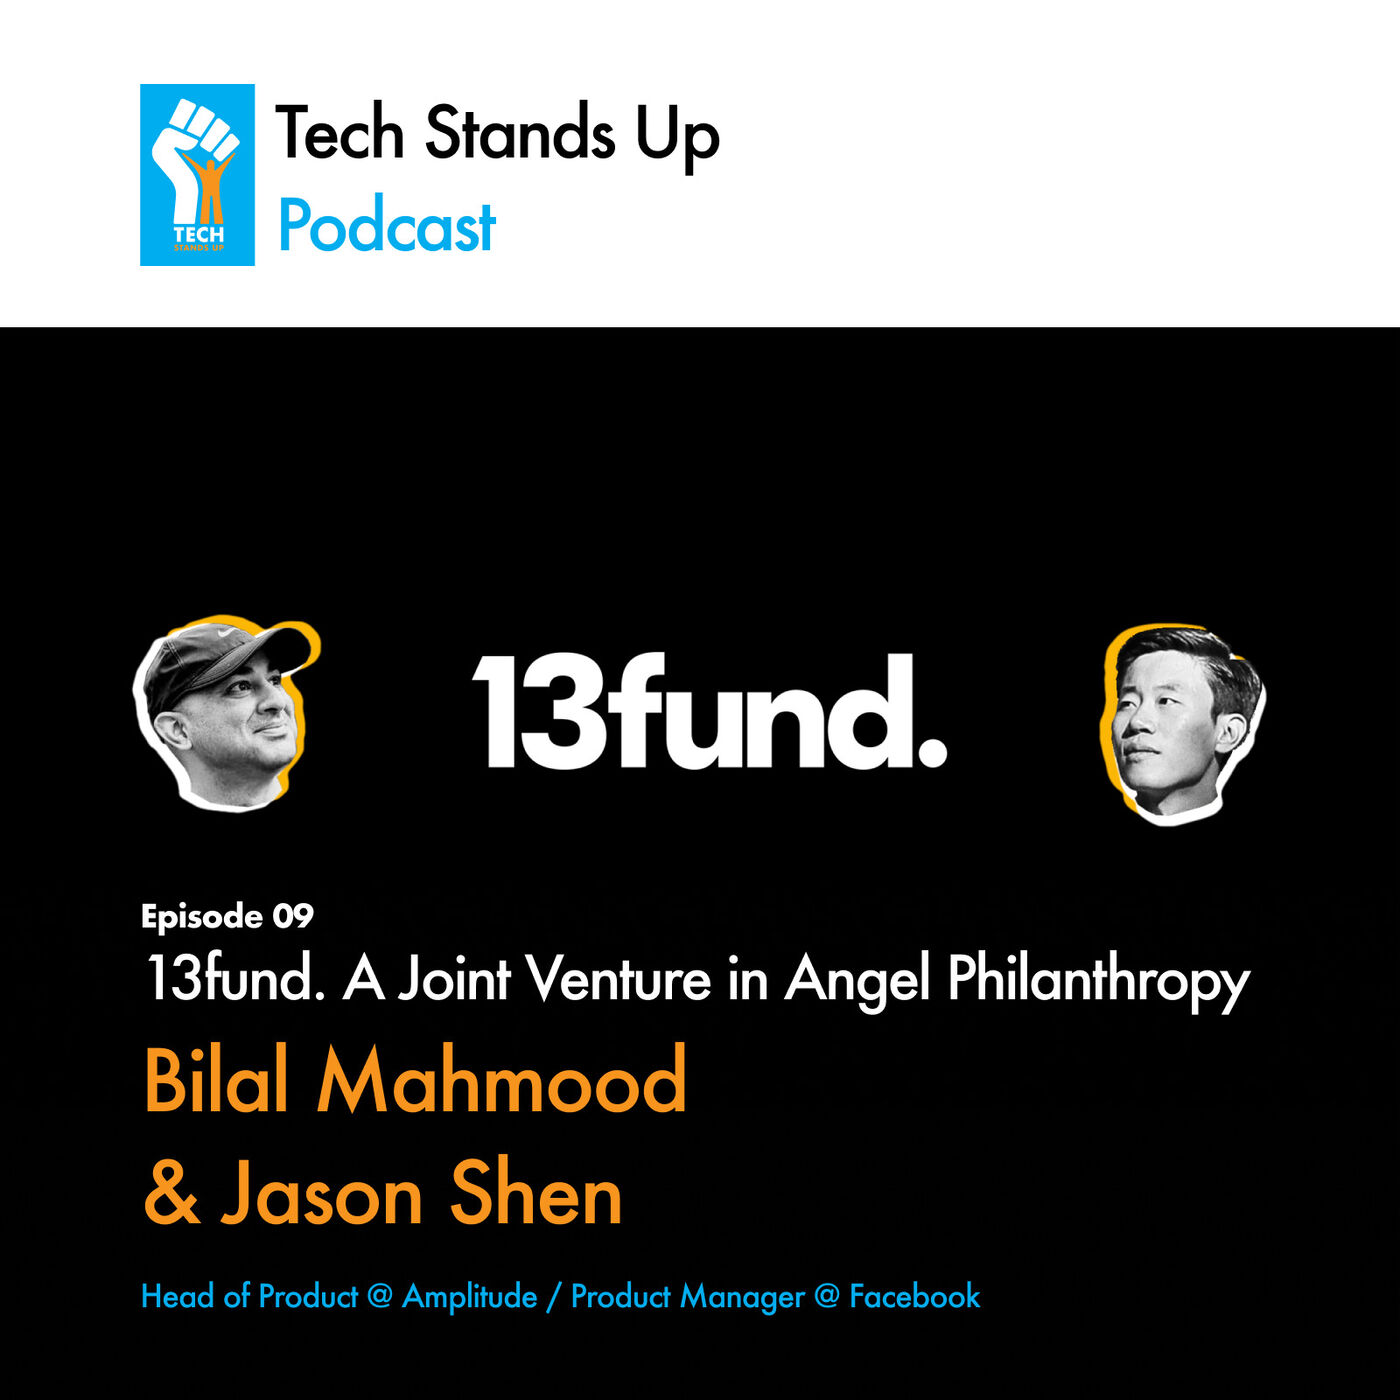 13fund. A Joint Venture in Angel Philanthropy